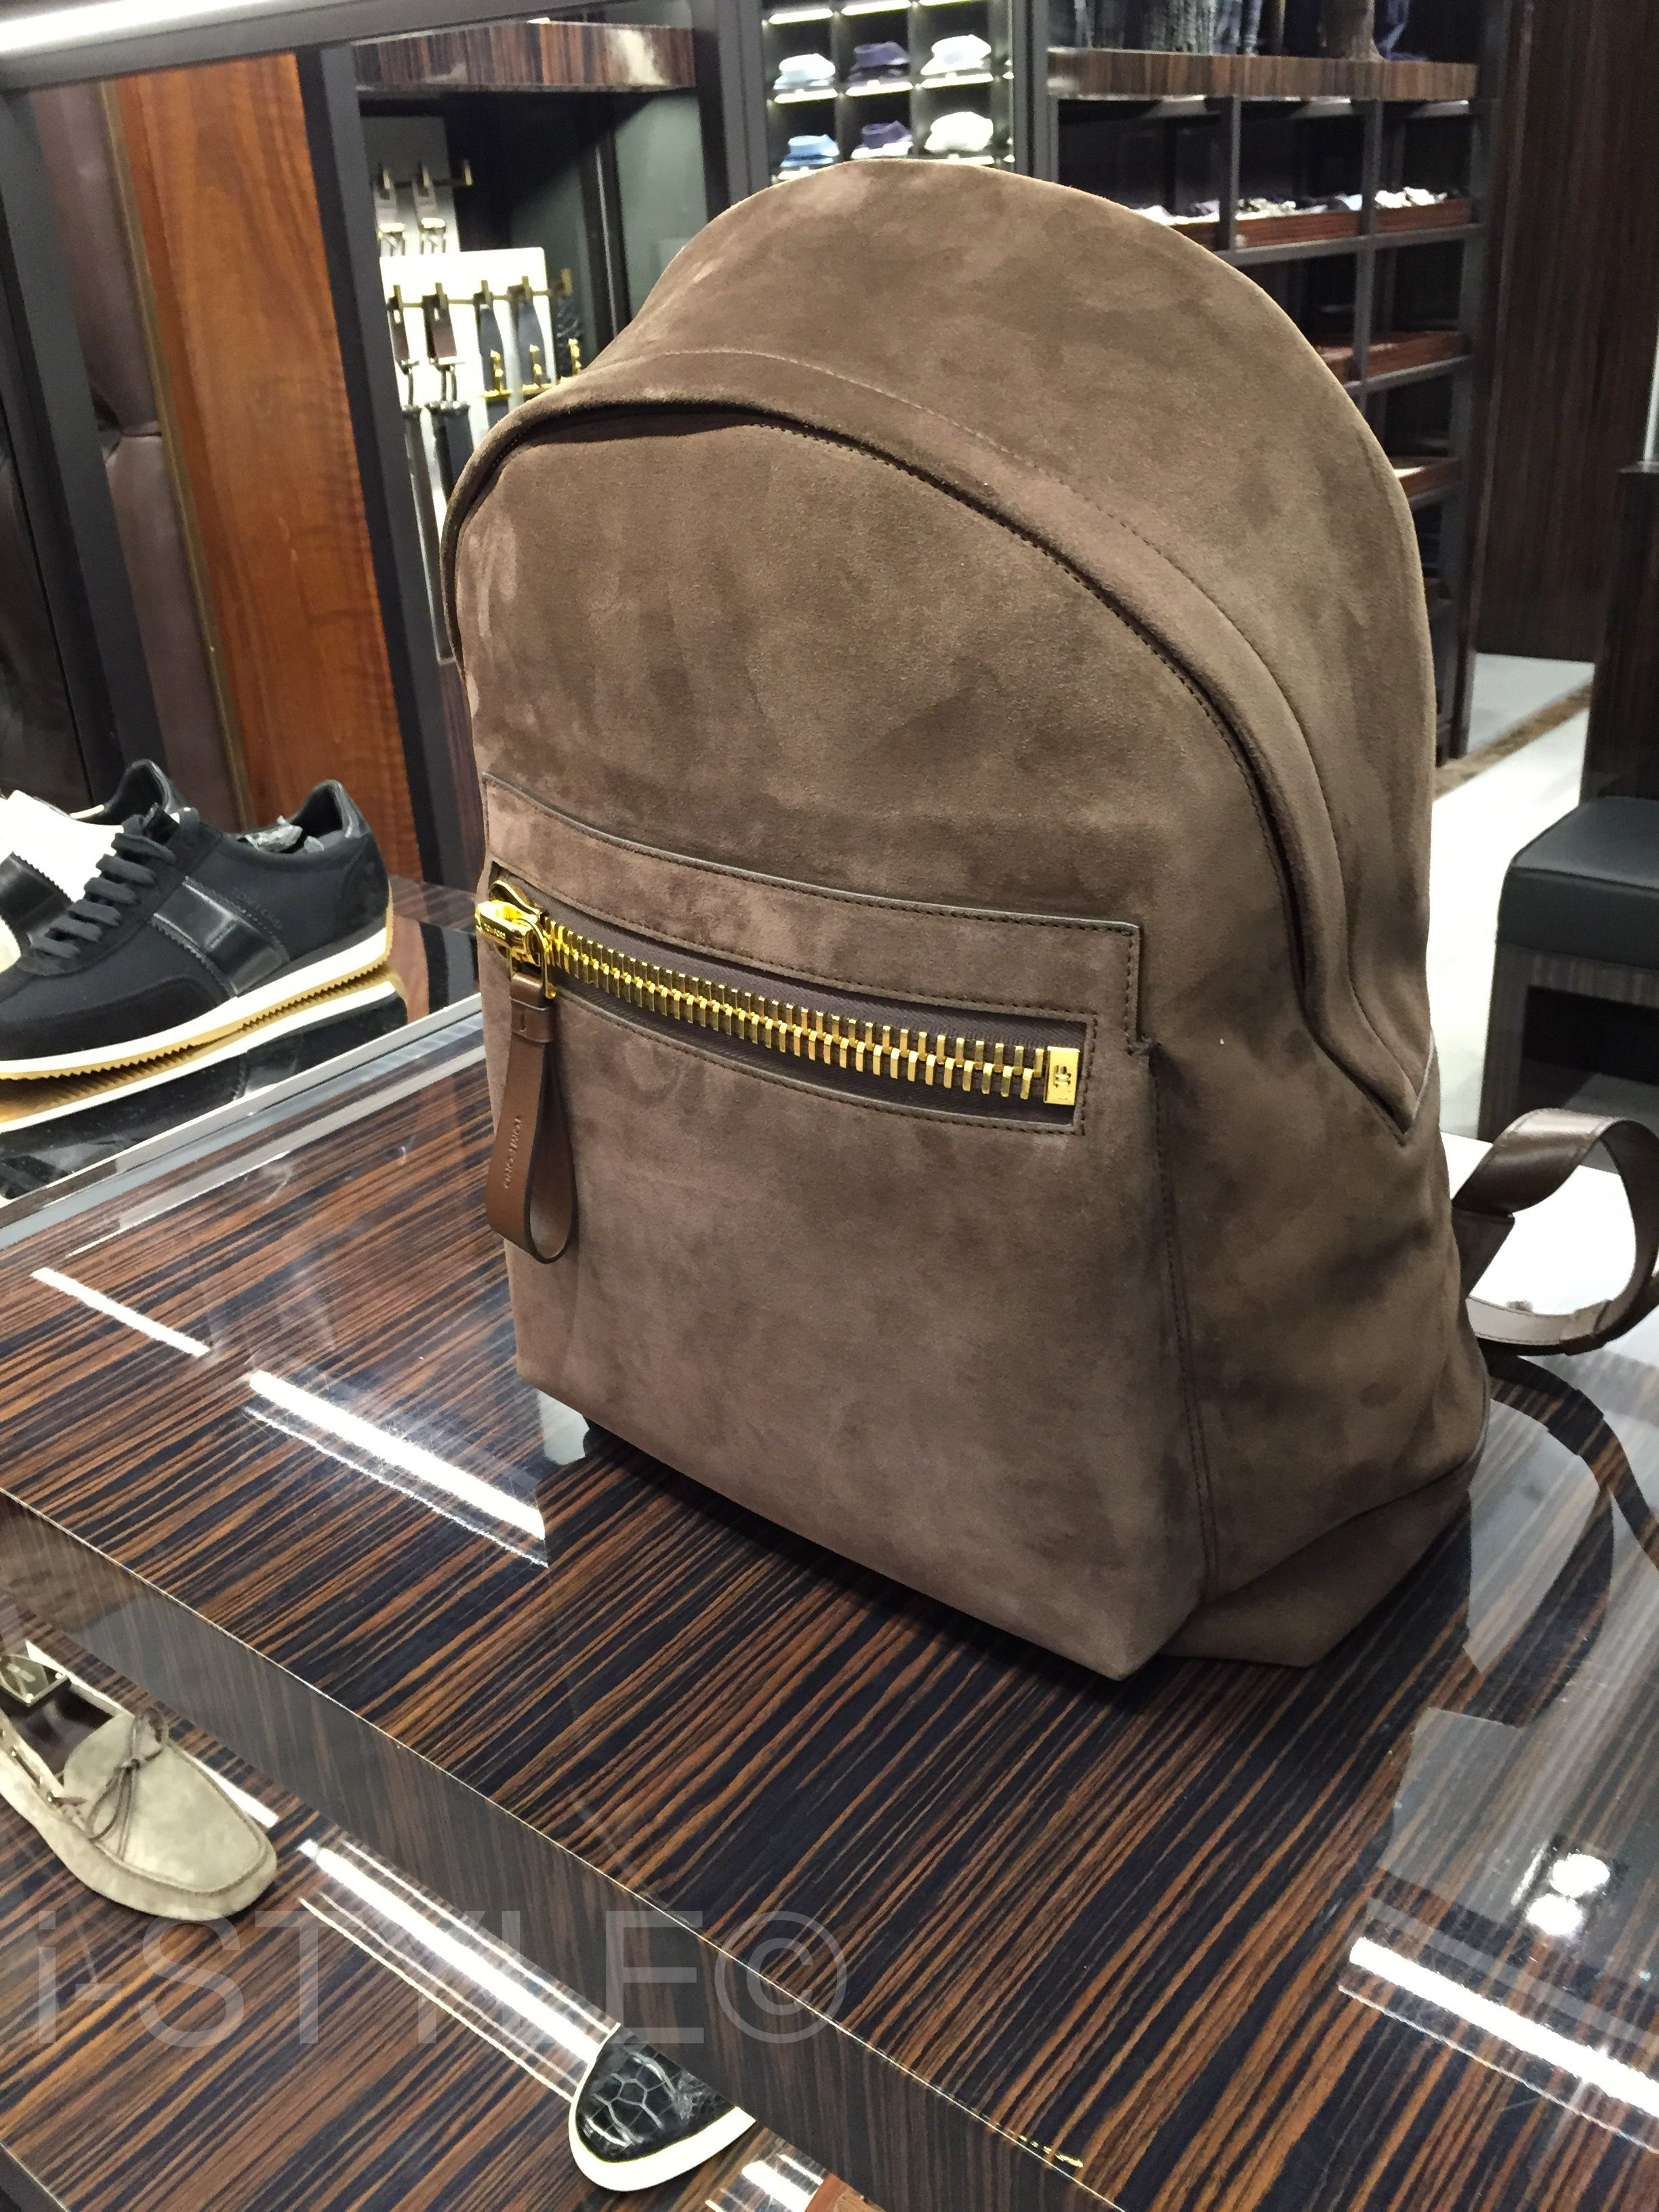 Backpack for the DapperMan! #TomFord